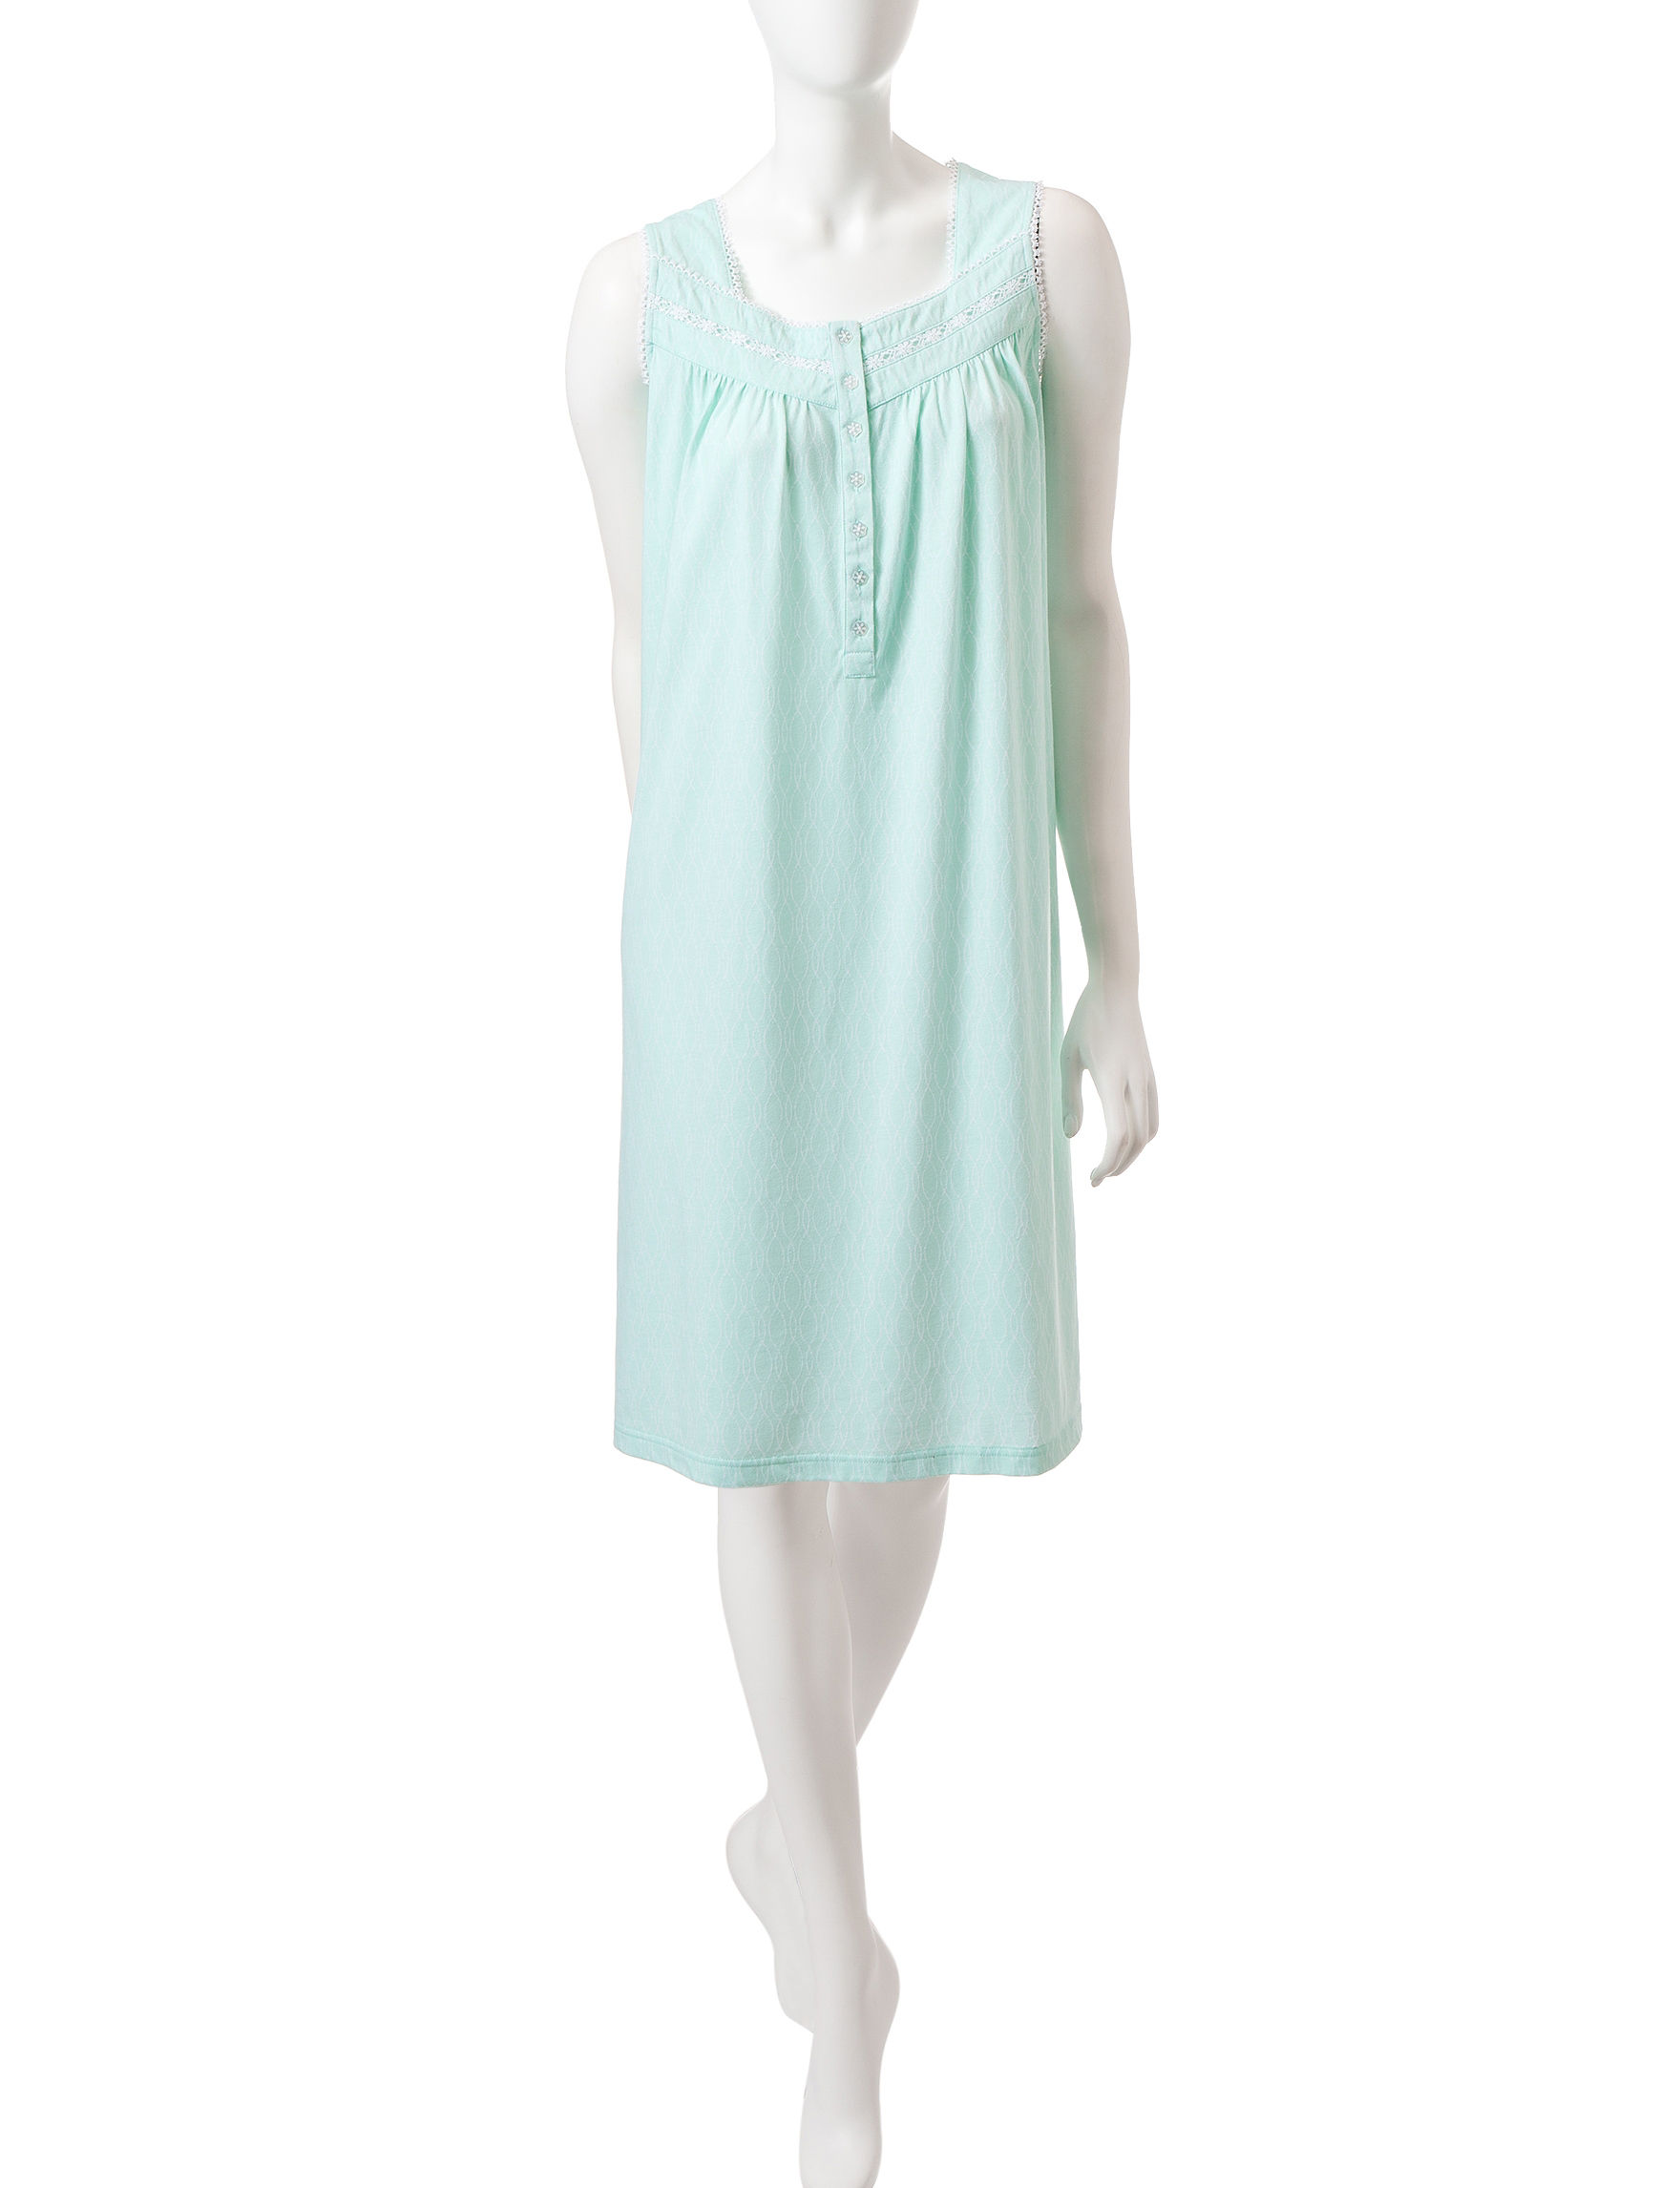 Jasmine Rose Mint Nightgowns & Sleep Shirts